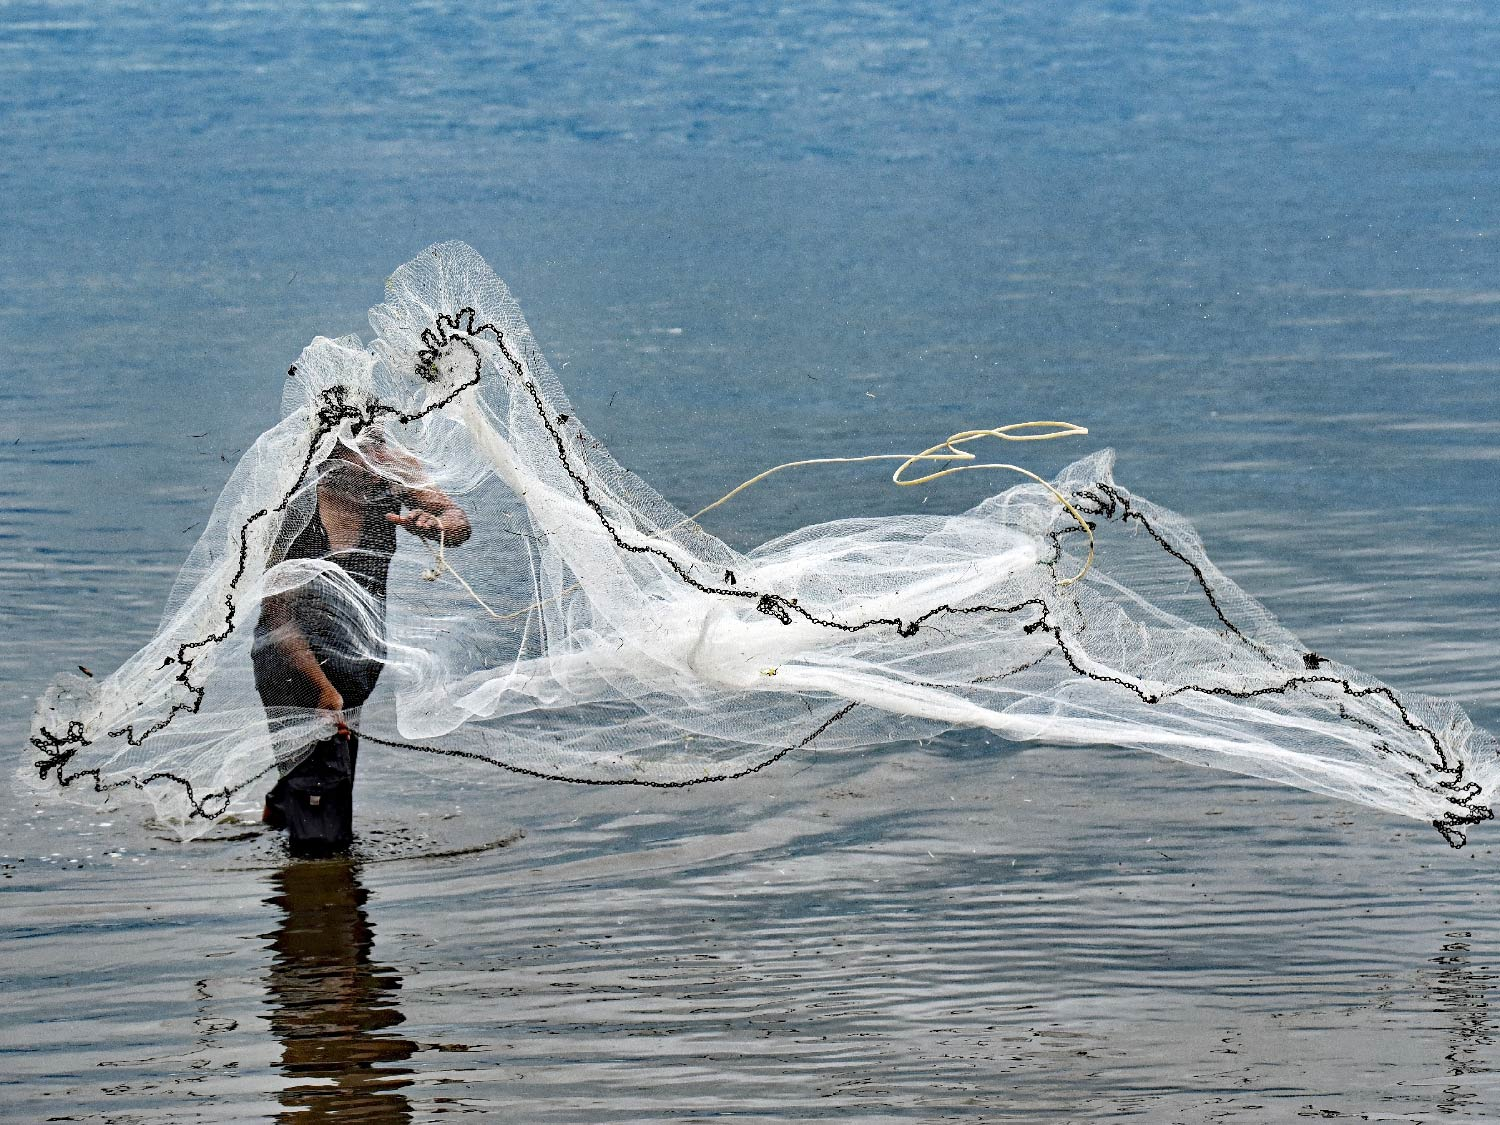 Three Things To Consider When Buying A Cast Net